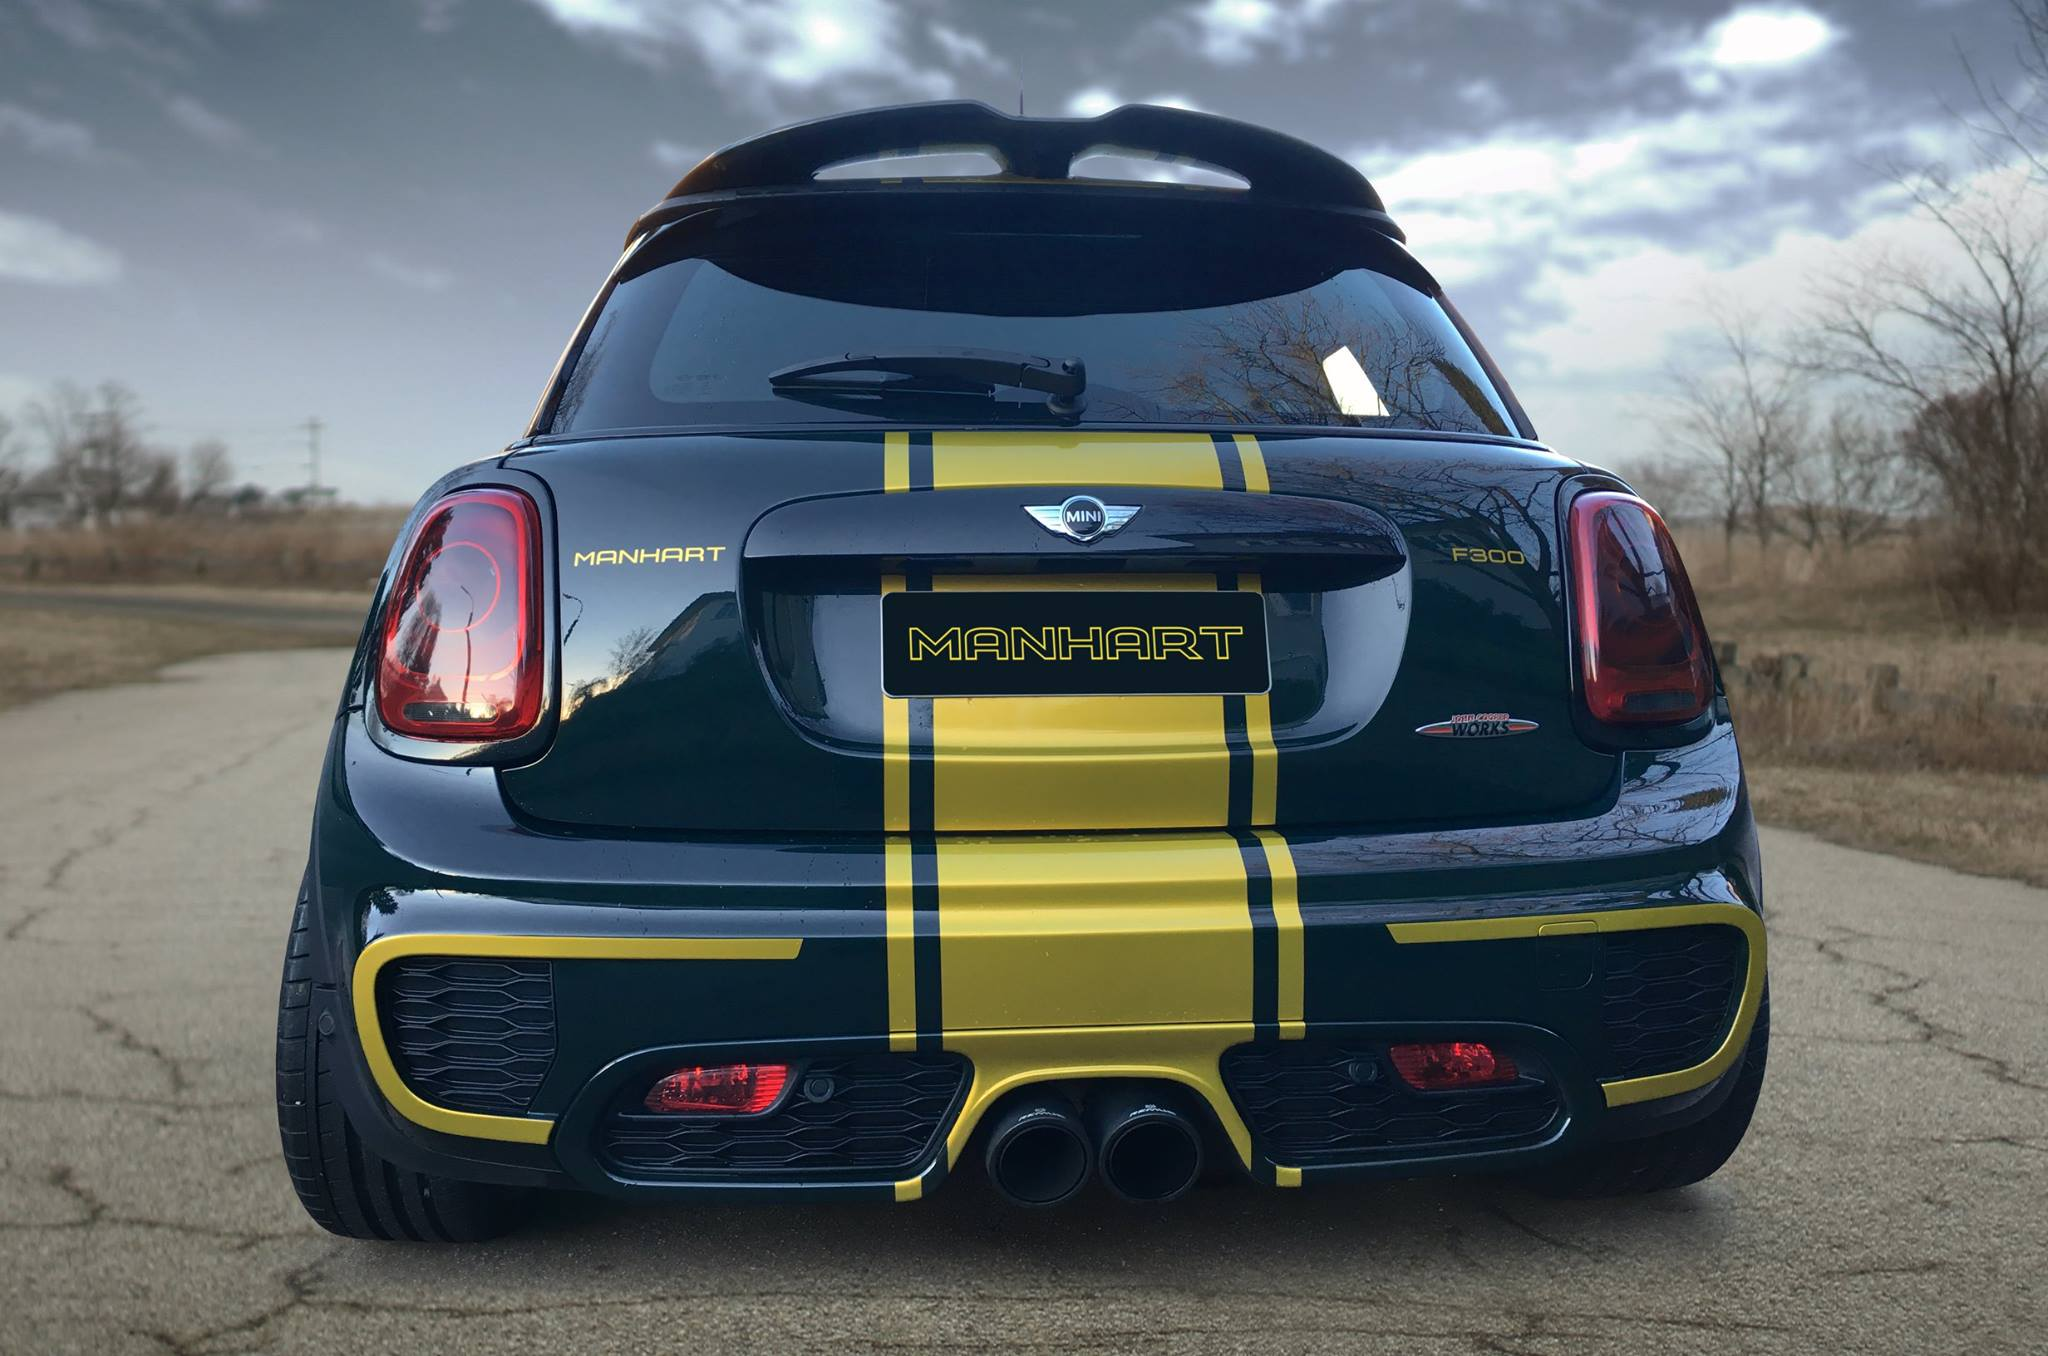 Manhart Mini John Cooper Works Tuning With 300 Horsepower